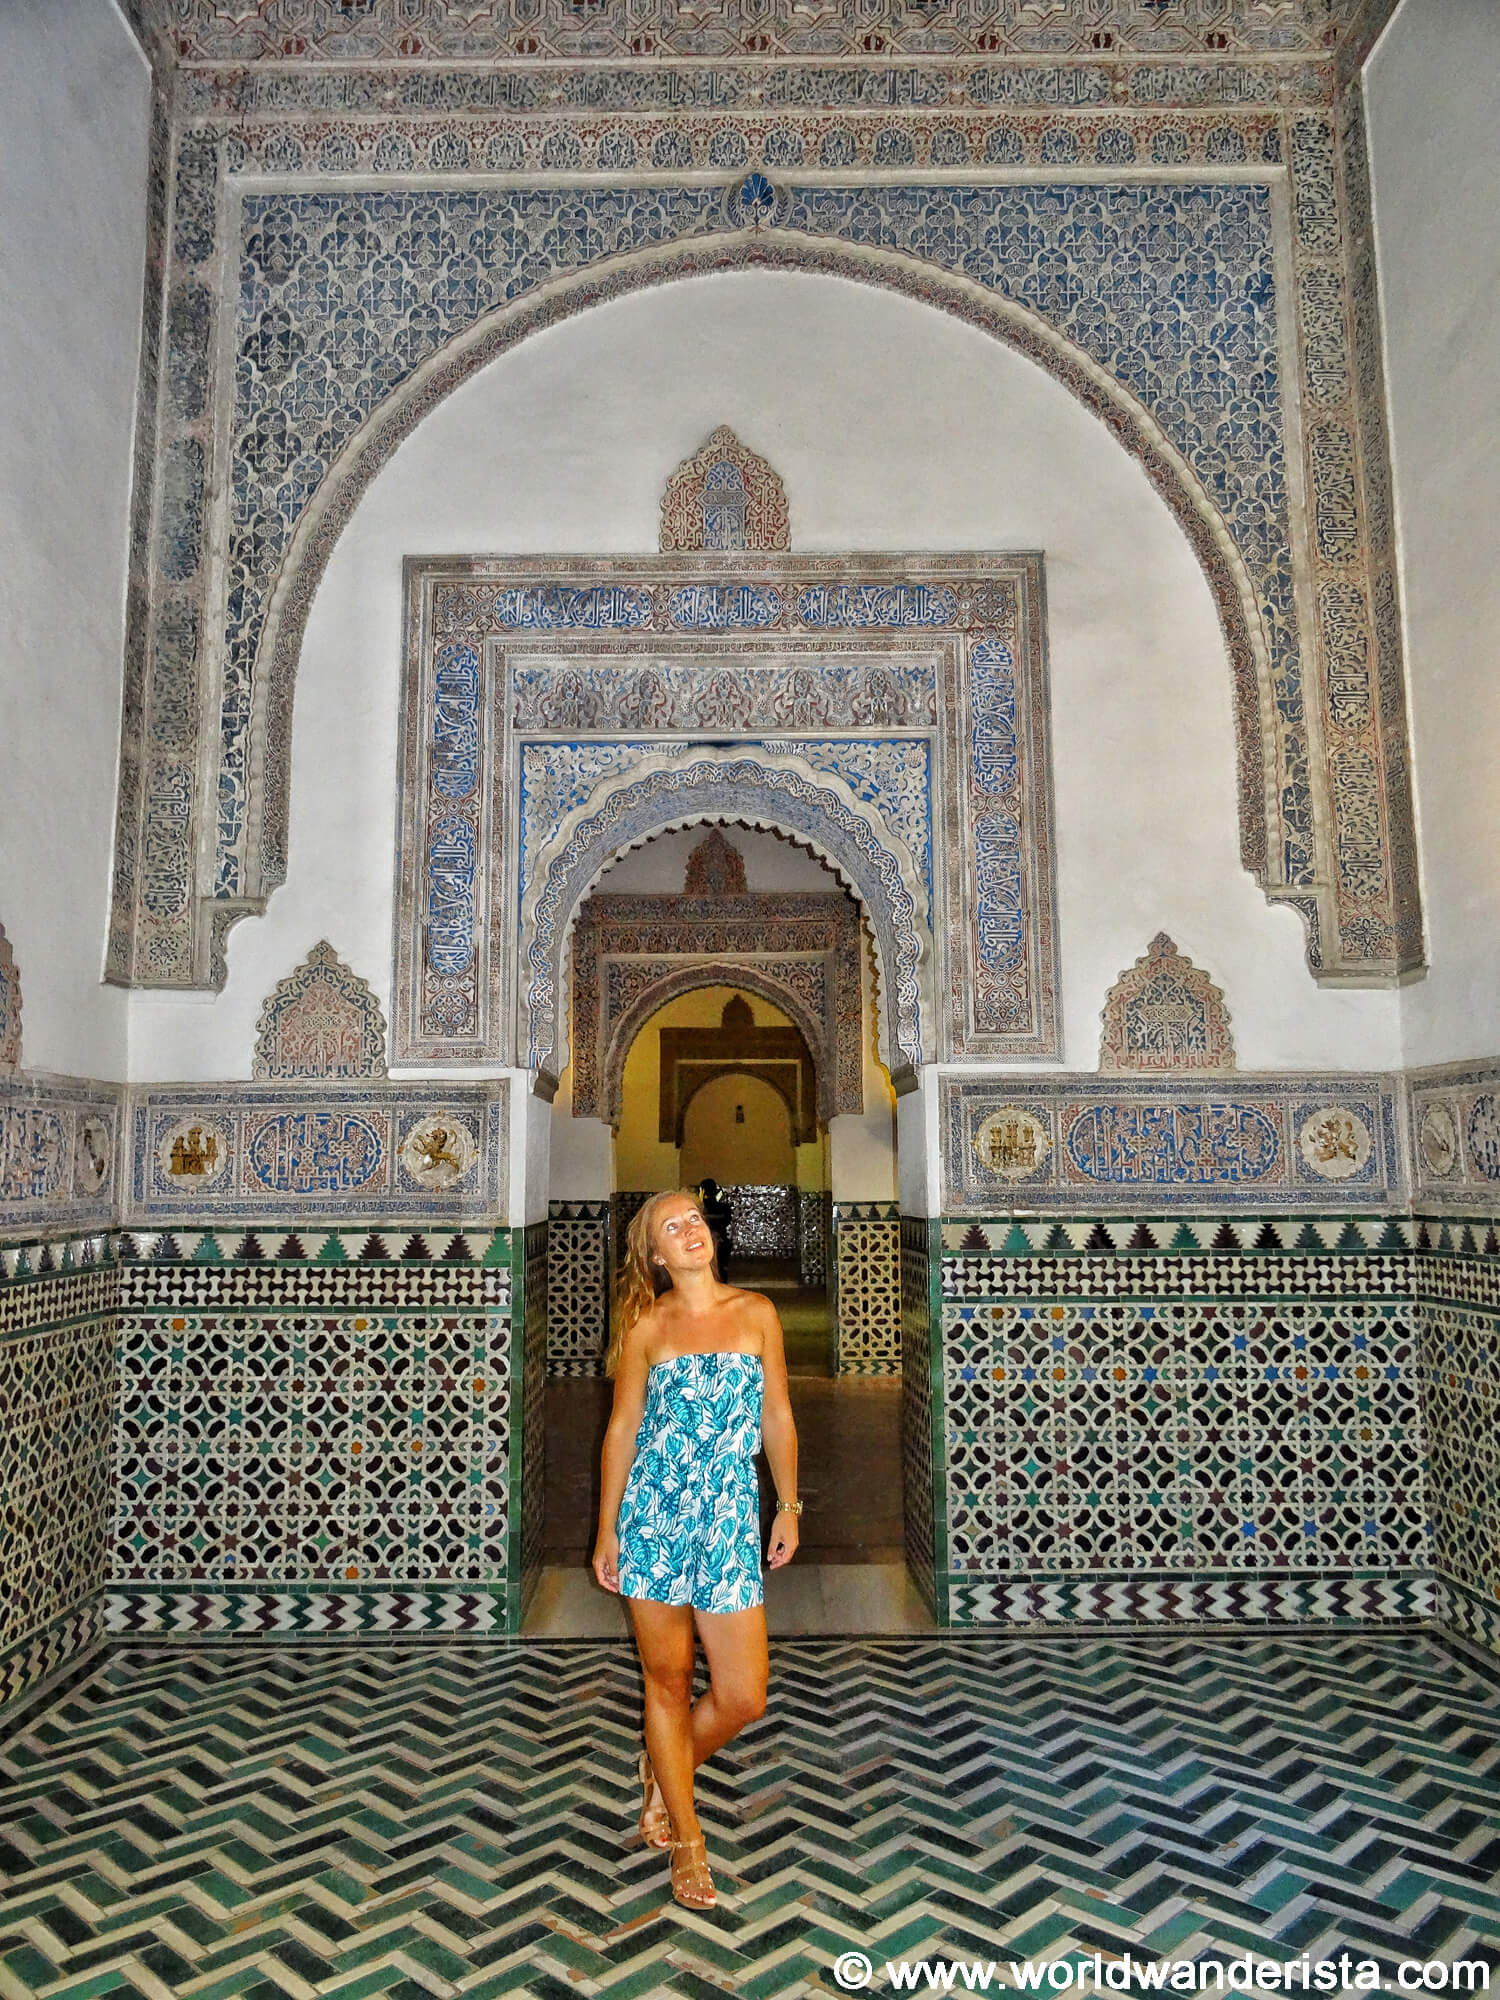 Photos of the Real Alcazar that will make you want to go - WORLD WANDERISTA